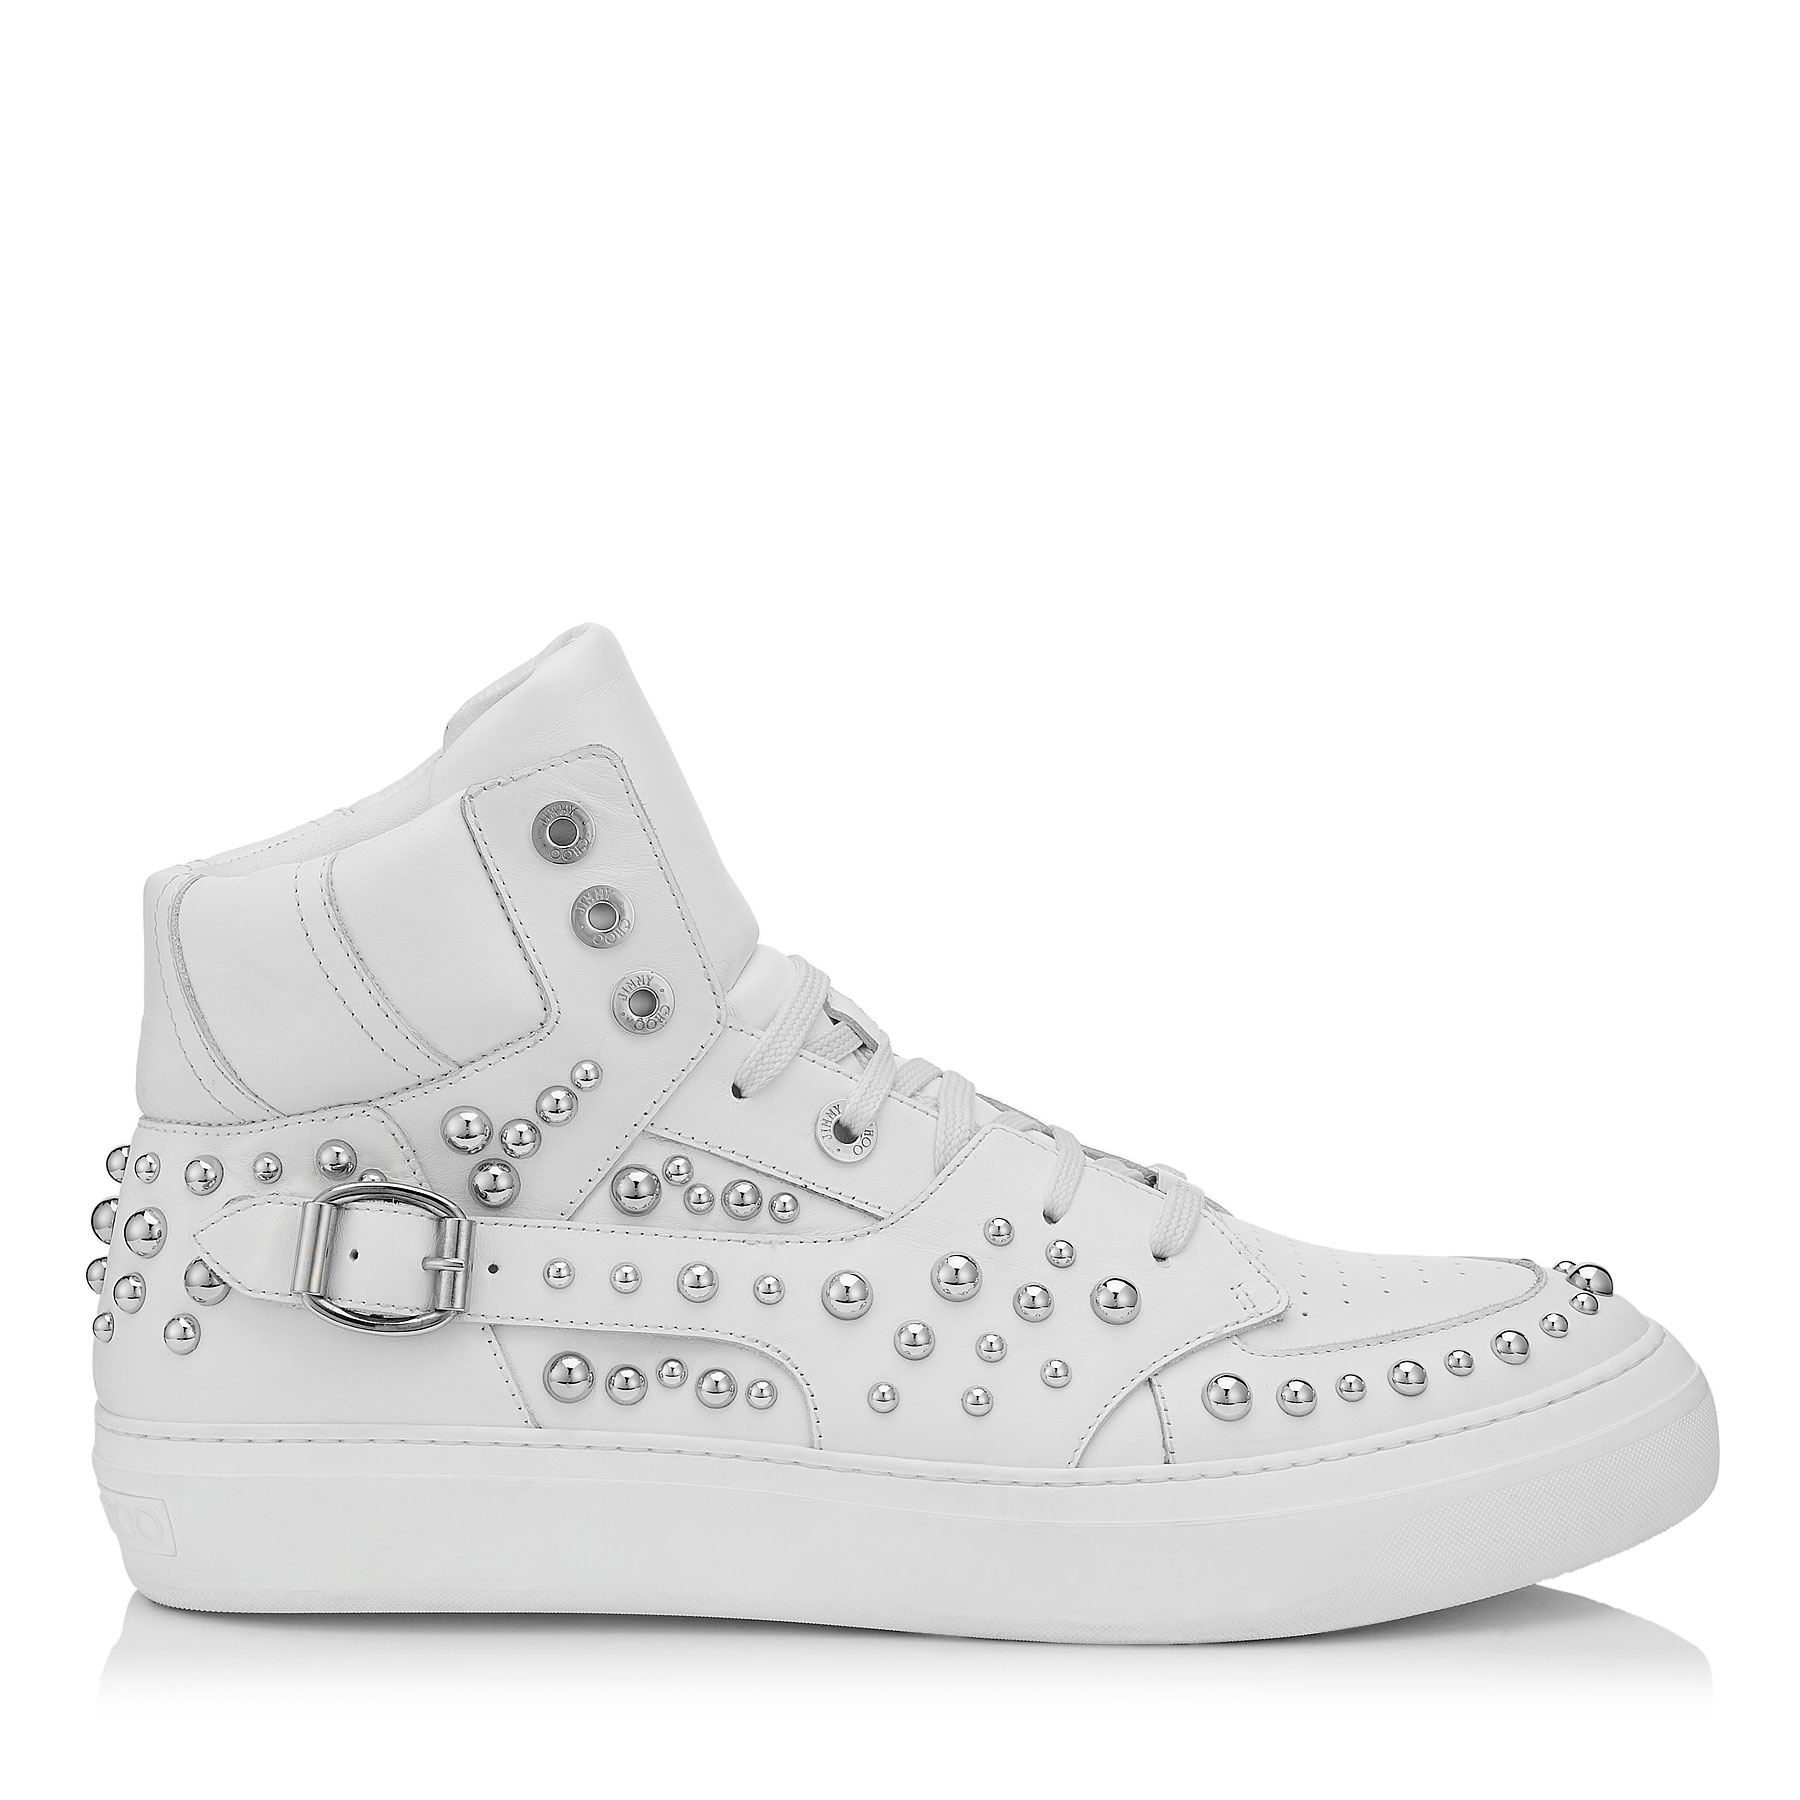 RUBEN White and Steel Sport Calf Leather High Top Trainers with Studs